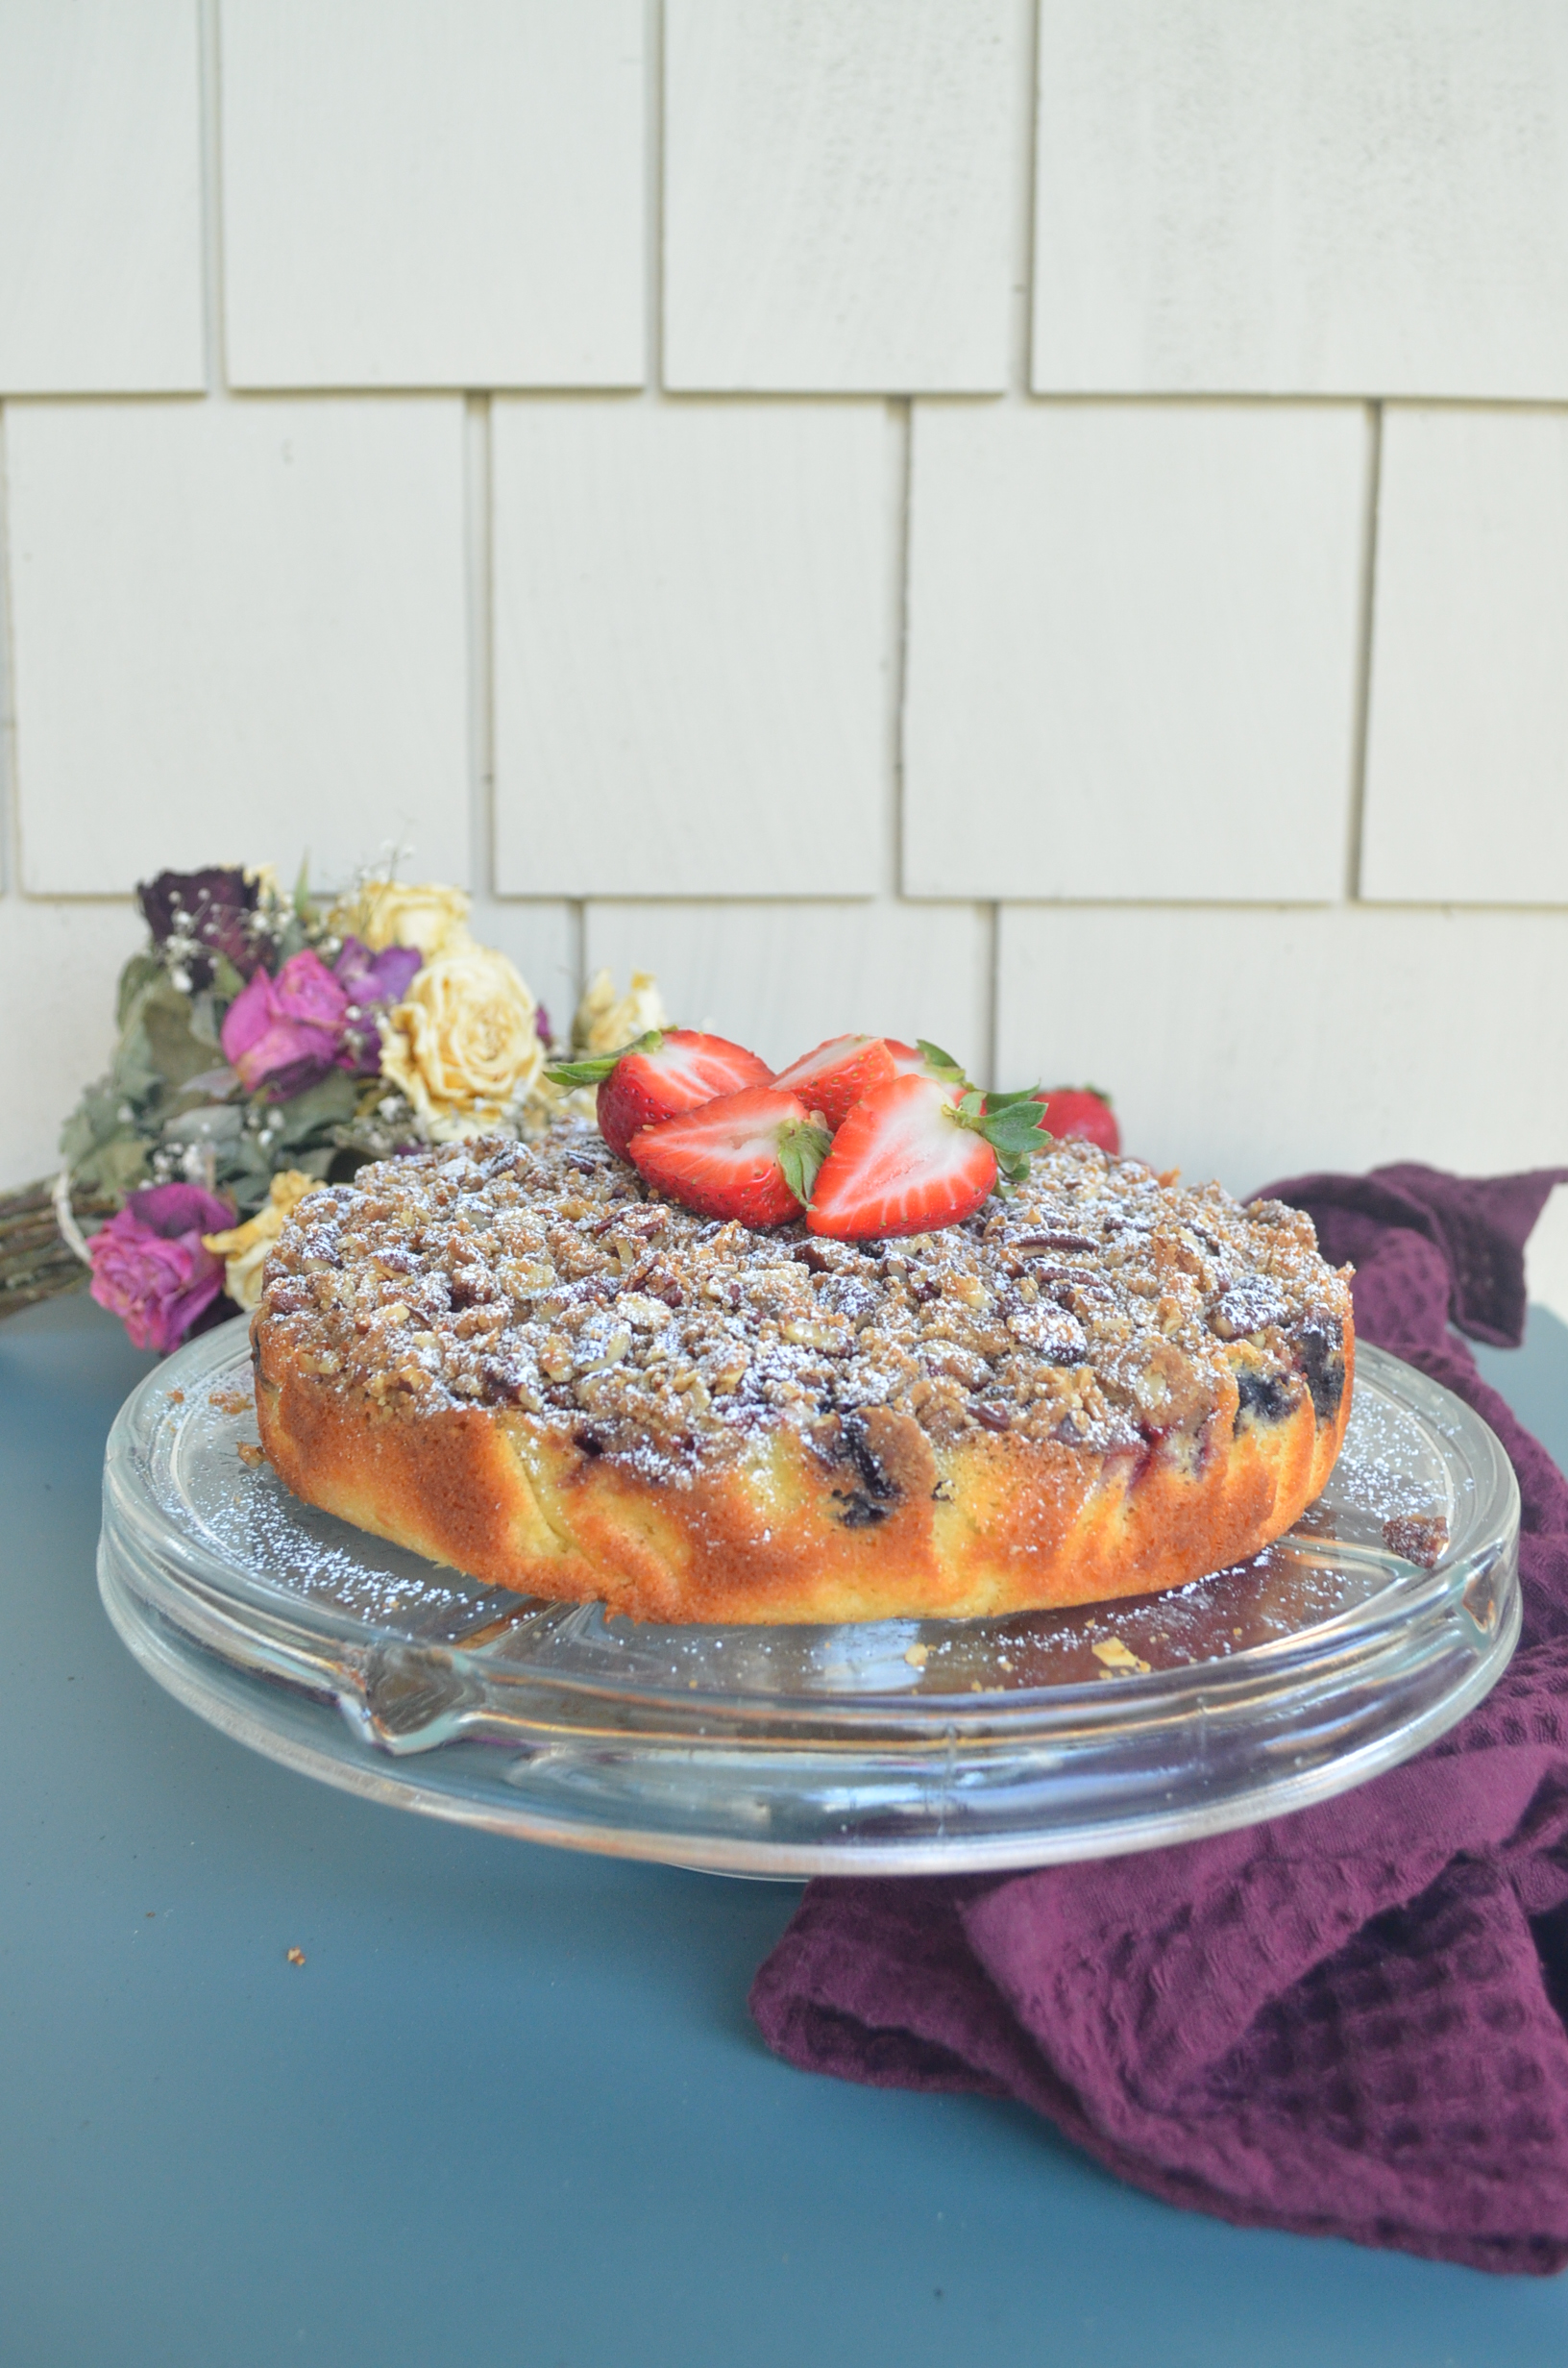 Strawberry and Blueberry Almond Crumb Cake